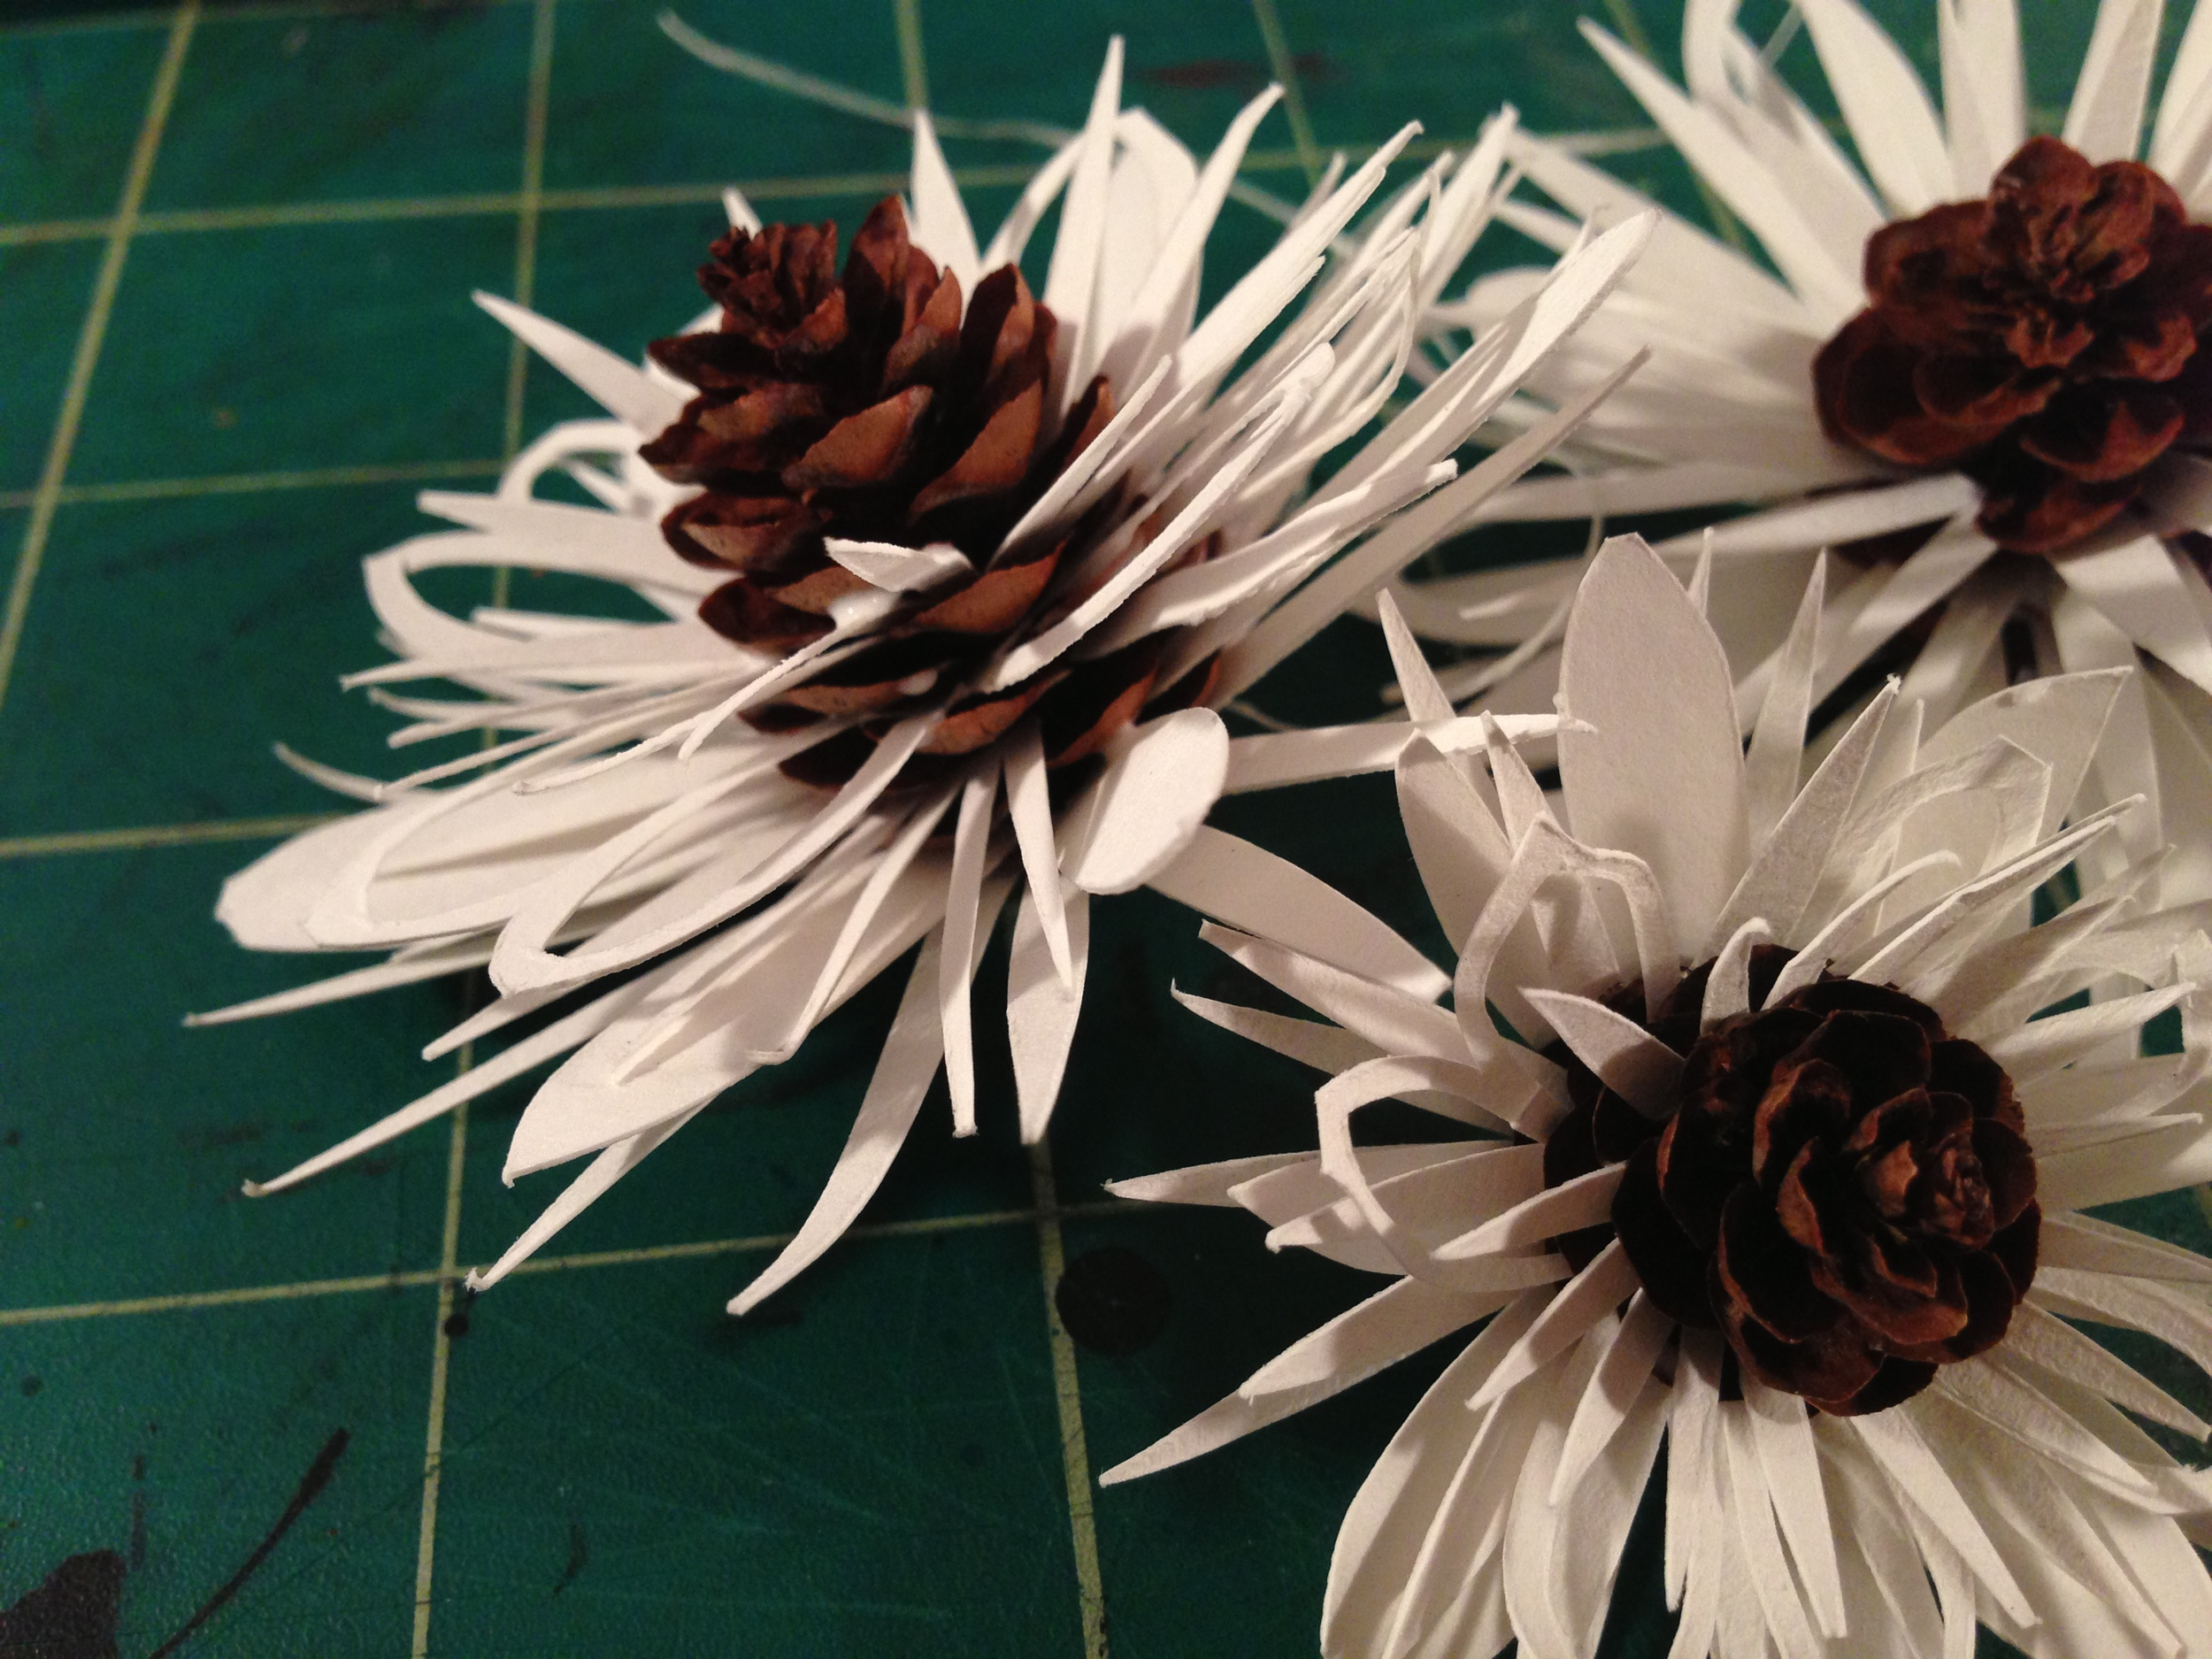 Other Nature: Winter Flowers